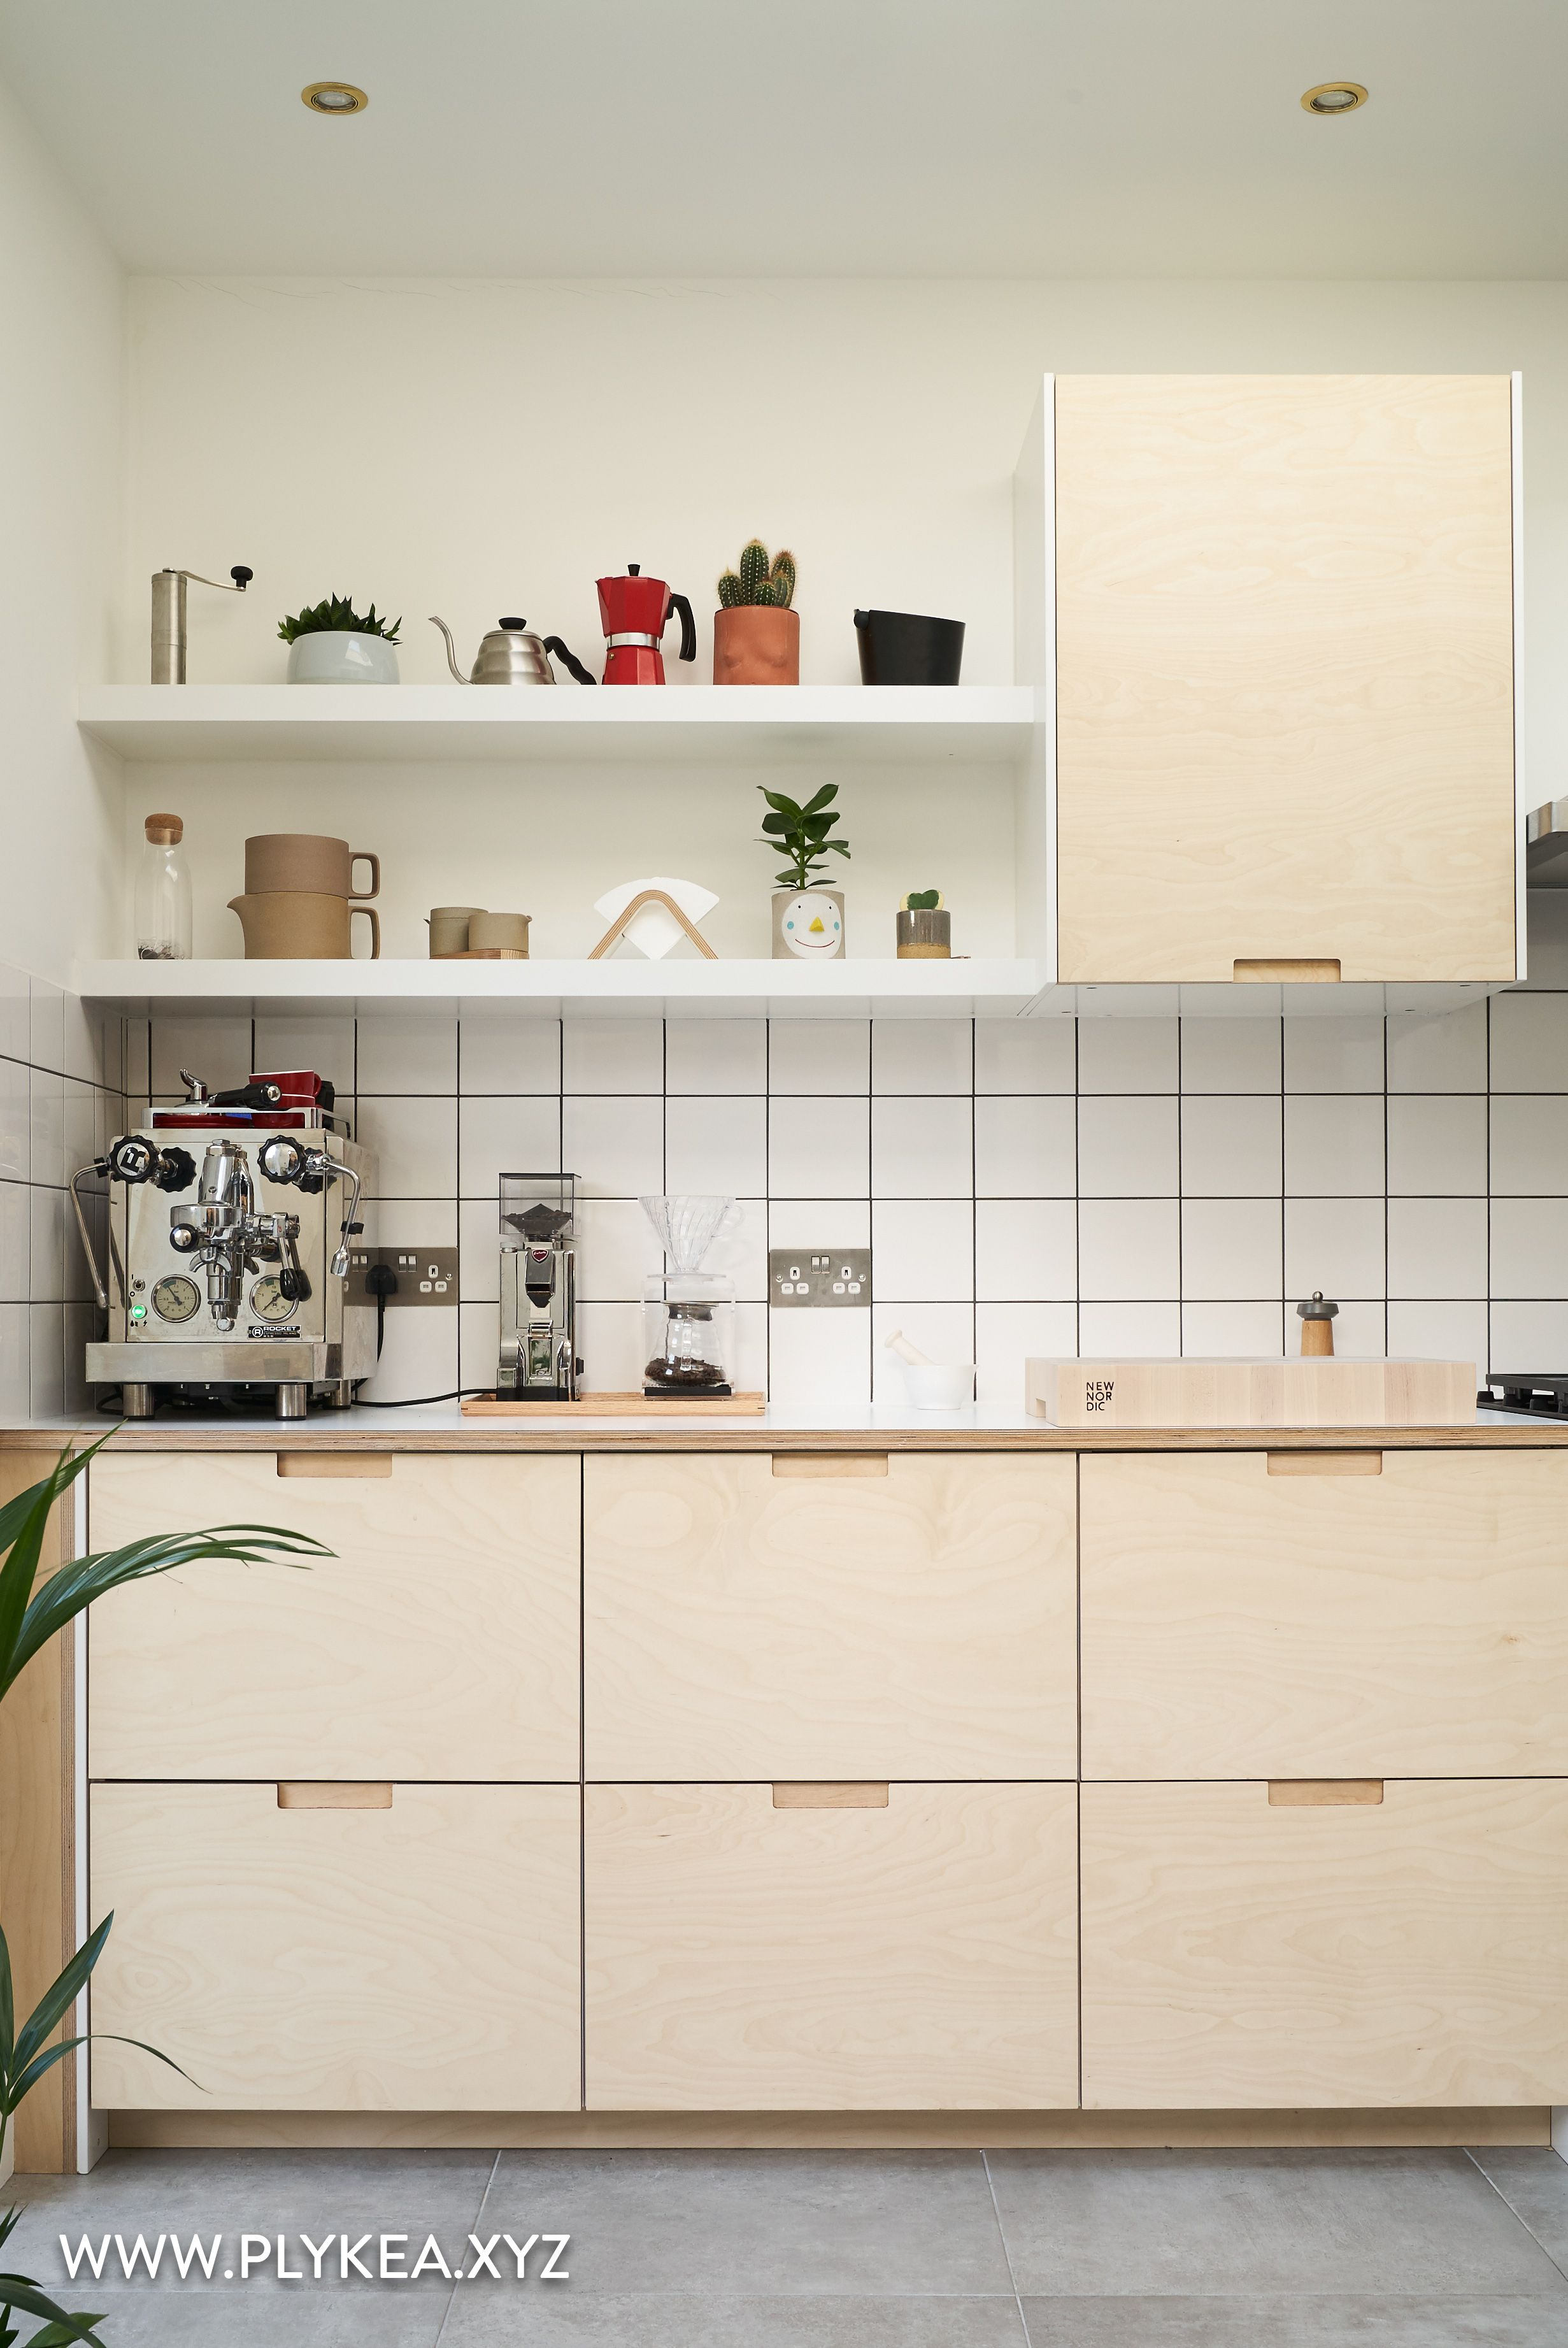 This Kitchen Features Birch Plywood Fronts With Our Semi Recessed Handles And Crystal White F3091 F Plywood Kitchen Diy Kitchen Renovation Kitchen Design Small